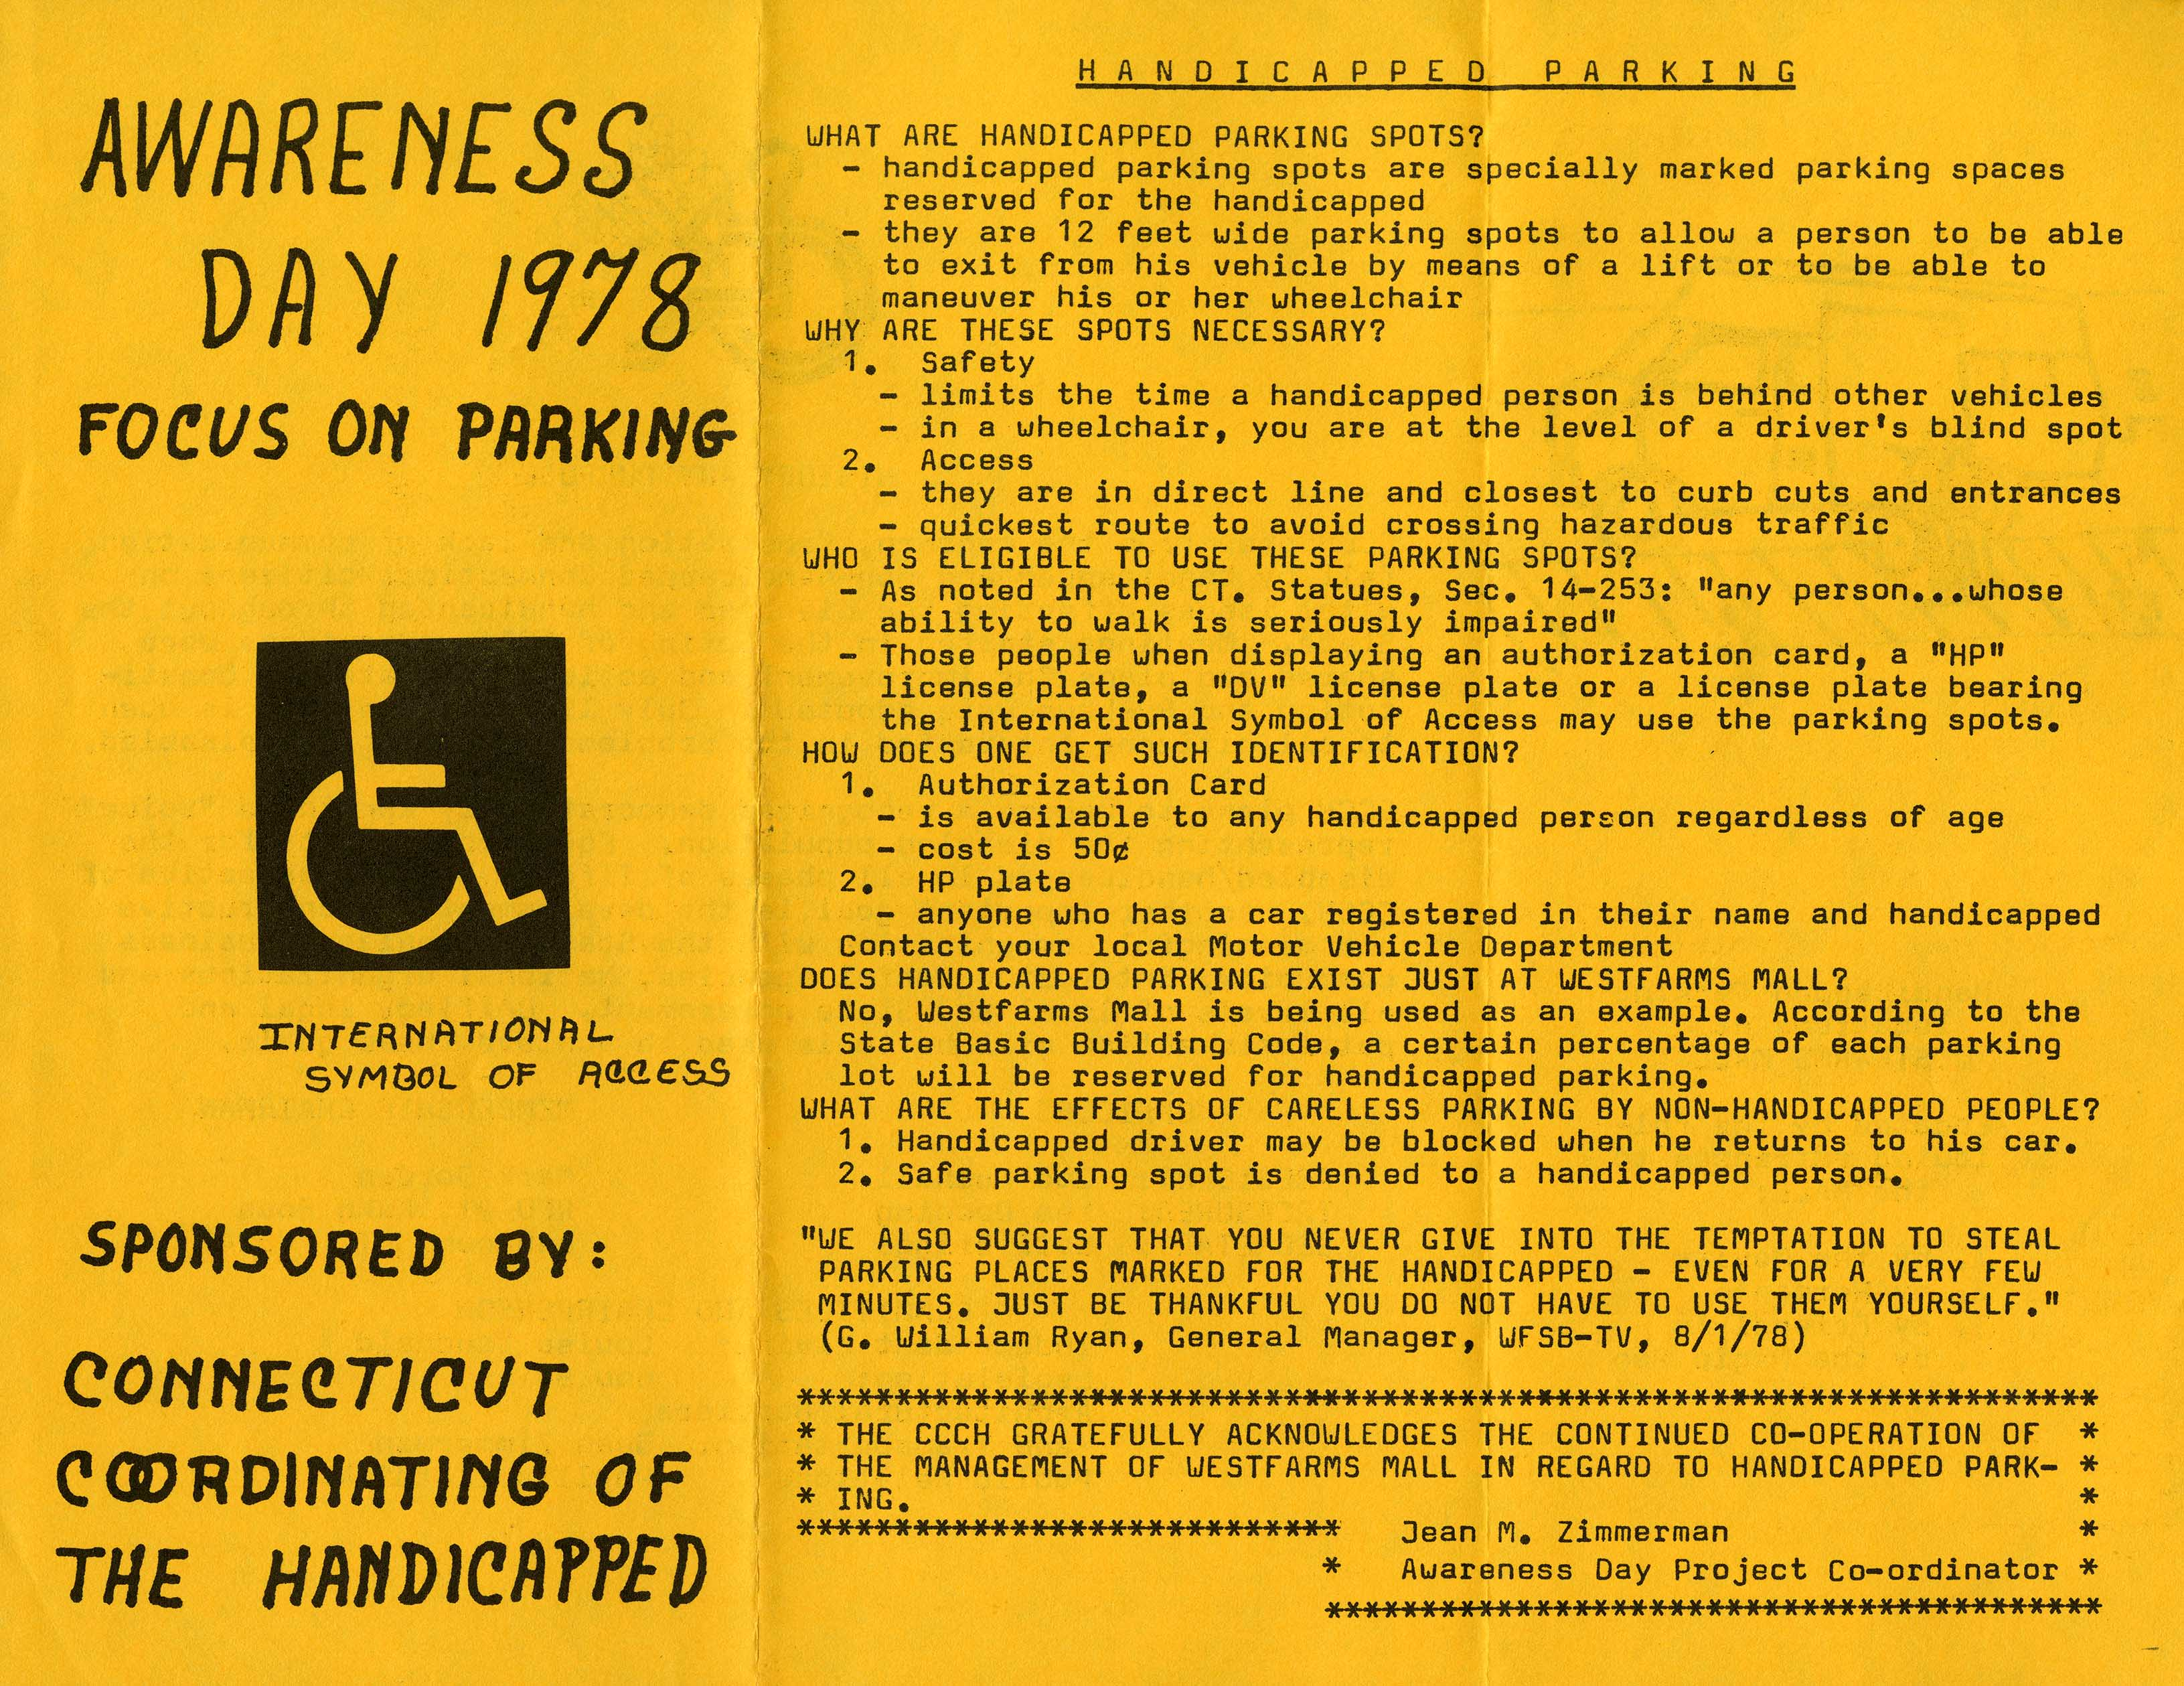 -	Pamphlet from Awareness Day 1978 focus on handicapped parking